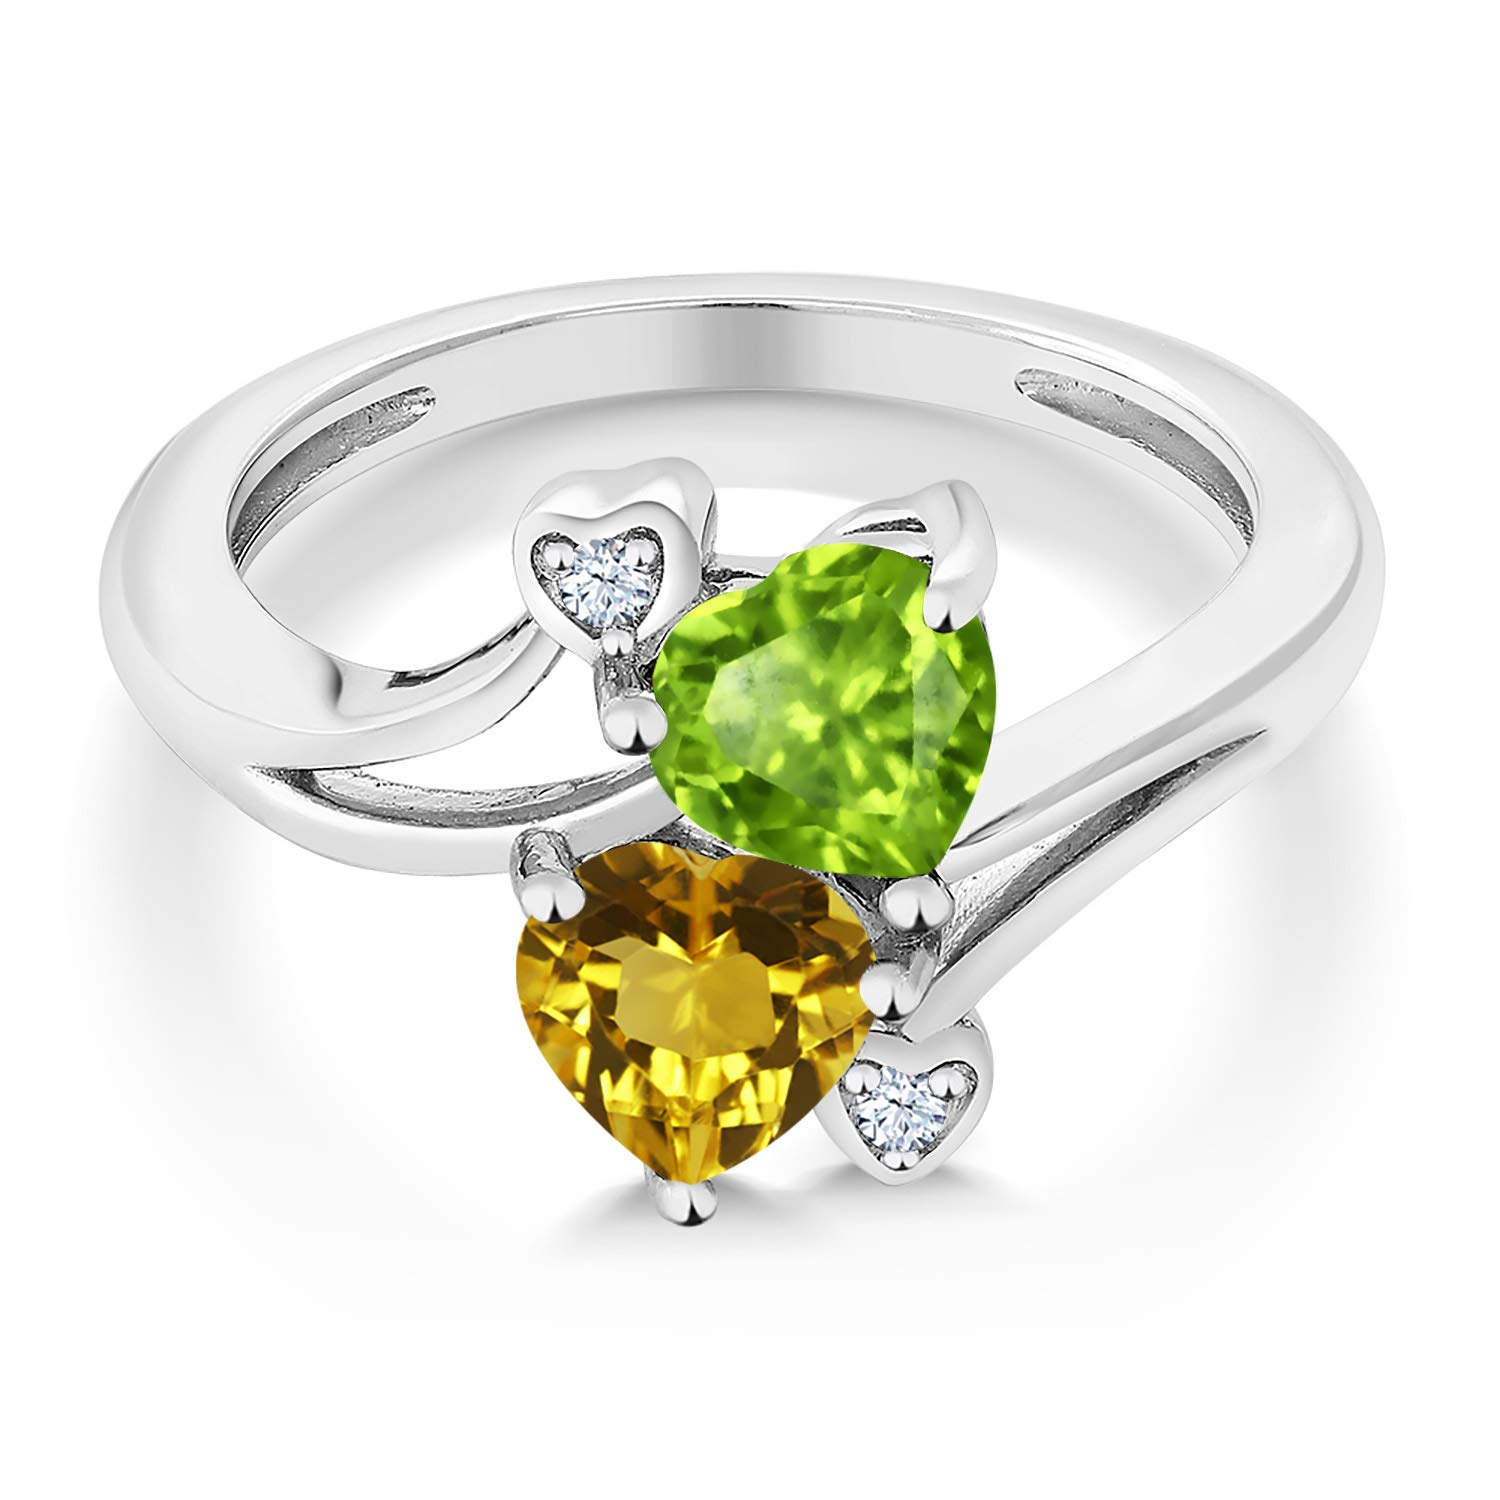 Gem Stone King 1.56 Ct Heart Shape Green Peridot Yellow Citrine 925 Sterling Silver Ring Available 5,6,7,8,9